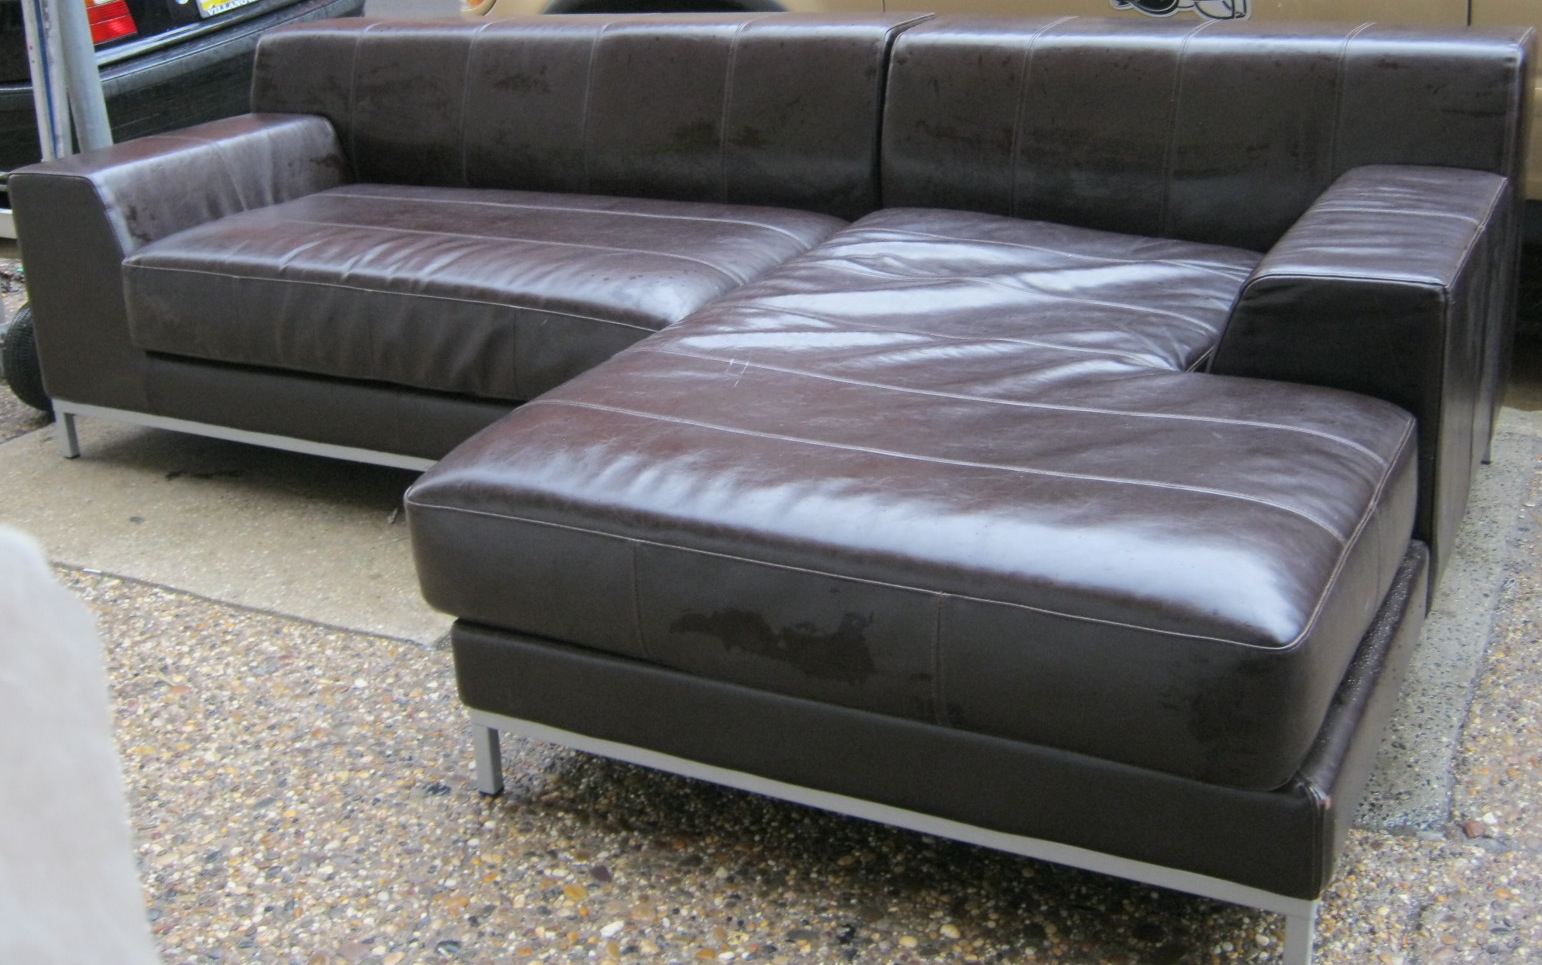 kramfors leather sofa nolan reclining fred meyer ikea sectional replacement slipcovers